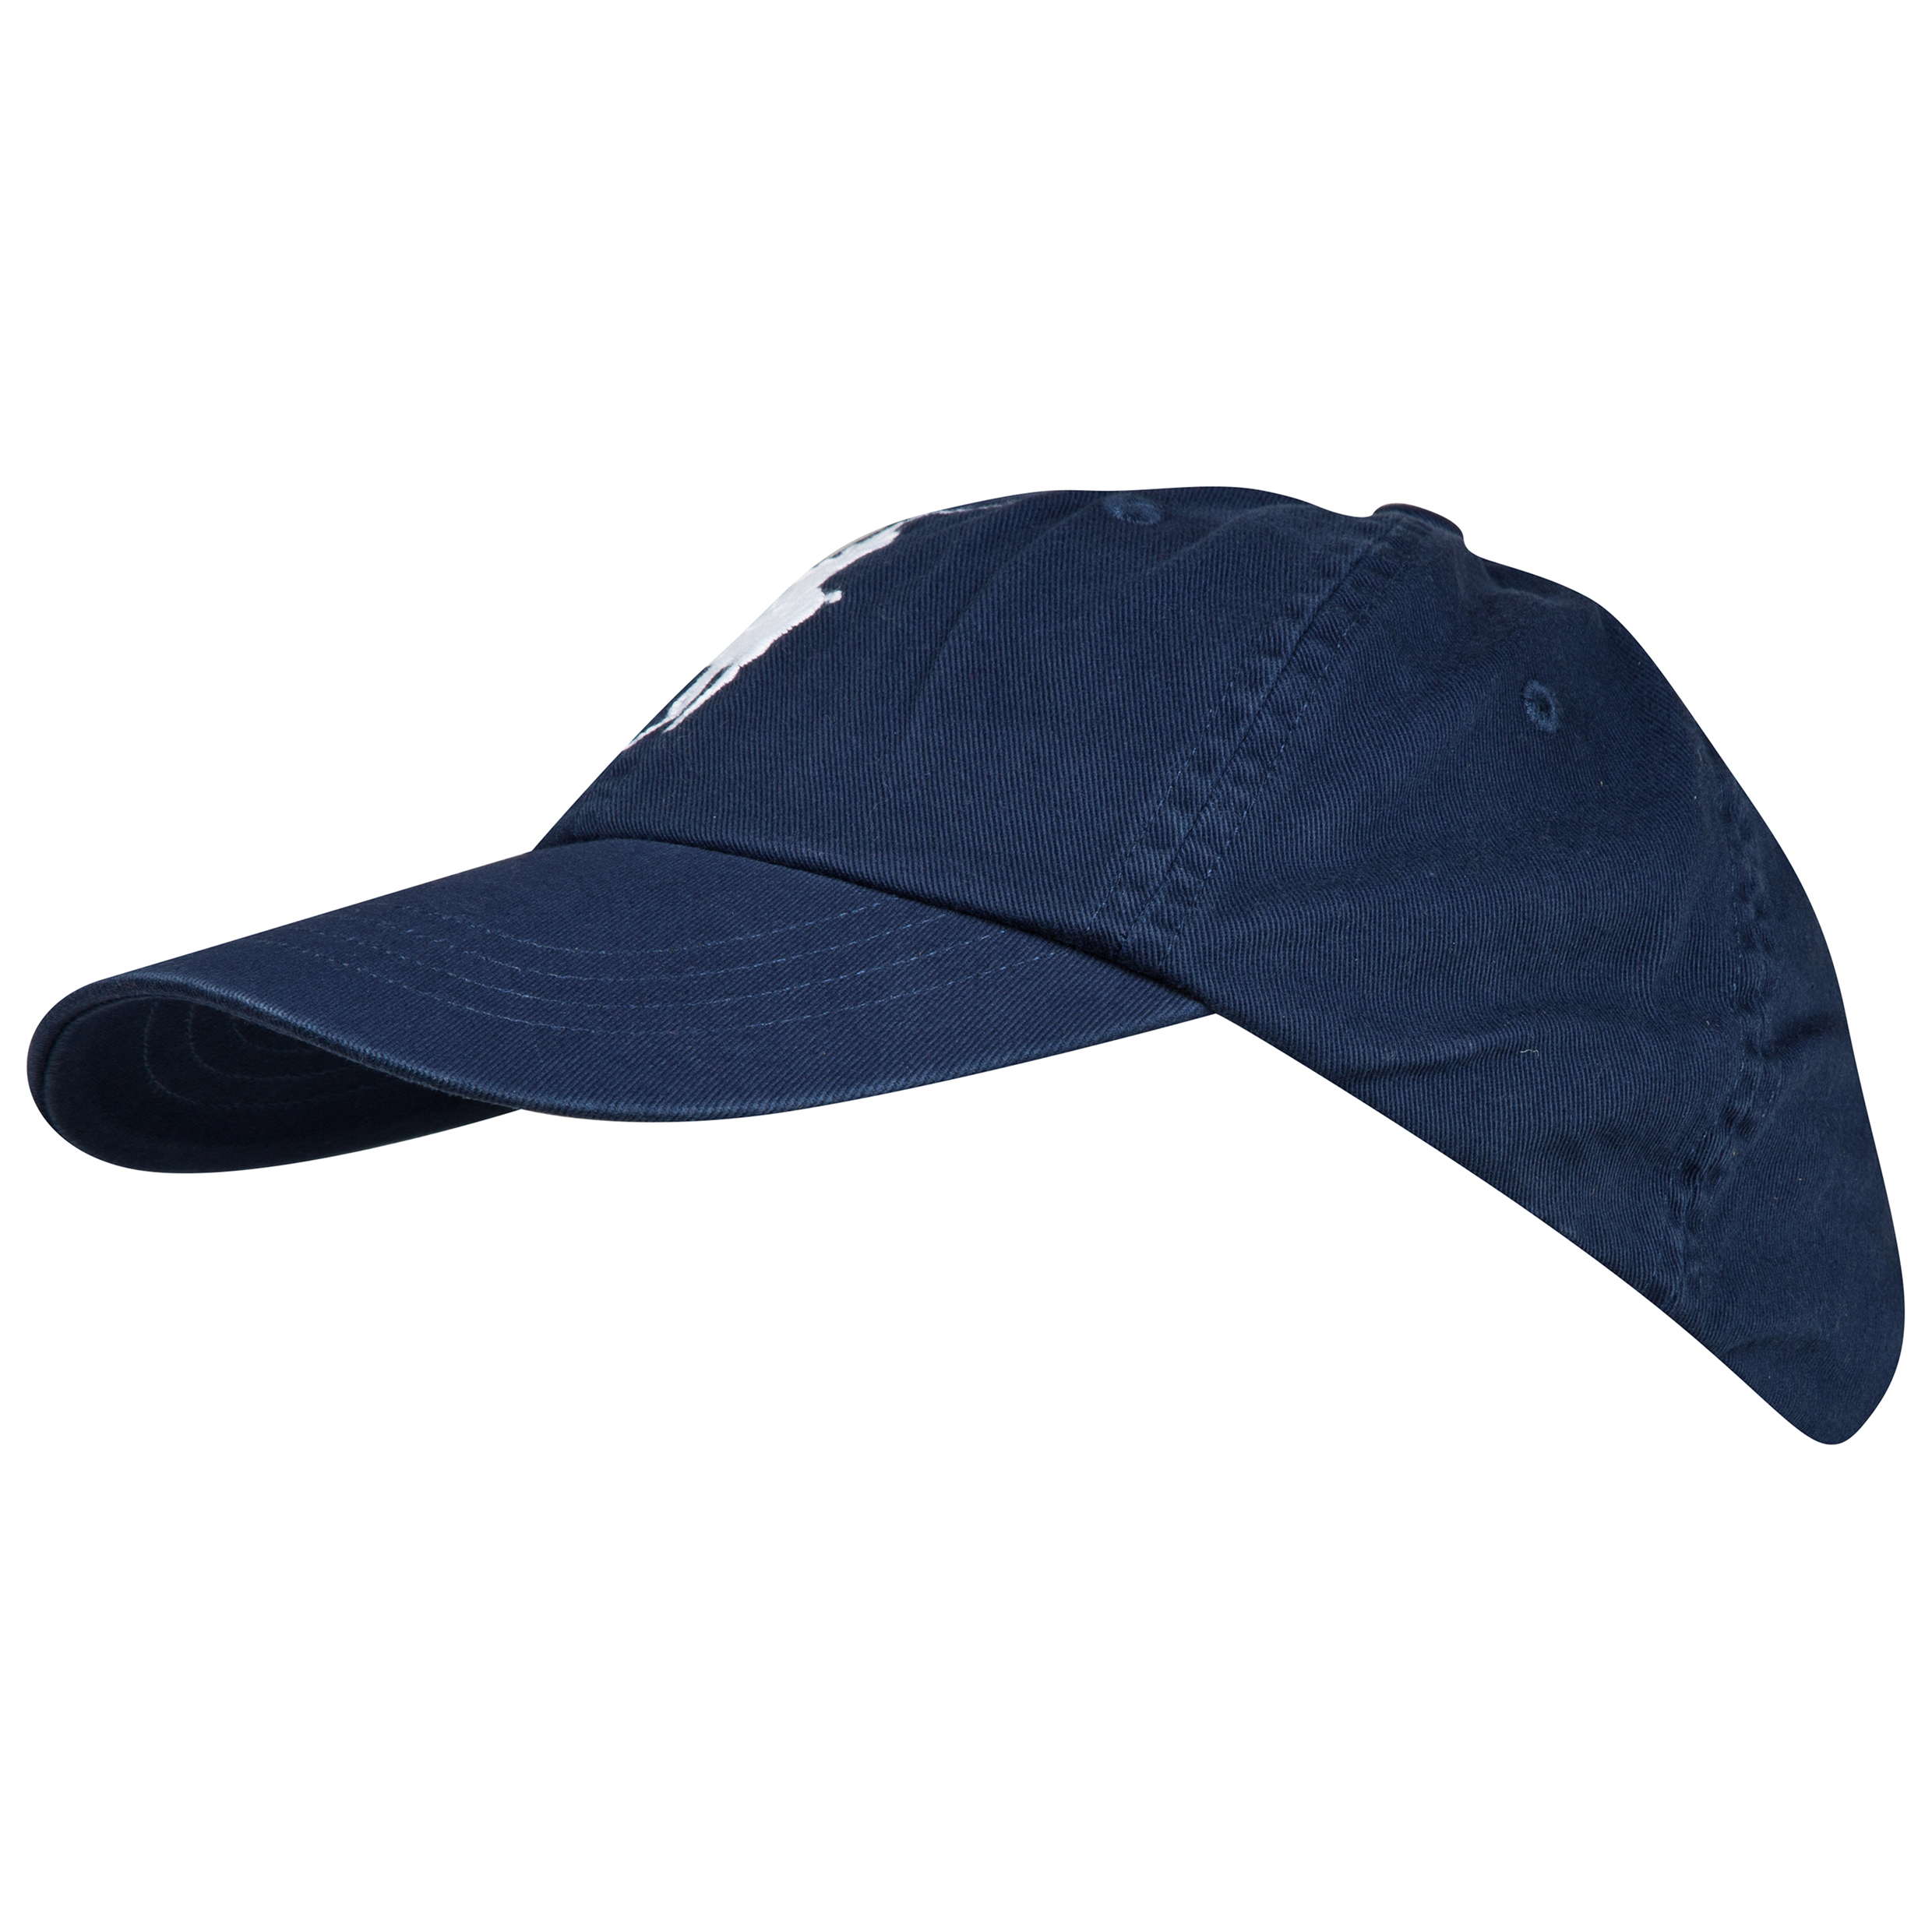 Wimbledon Polo Ralph Lauren Classic Sports Cap 2 - French Navy